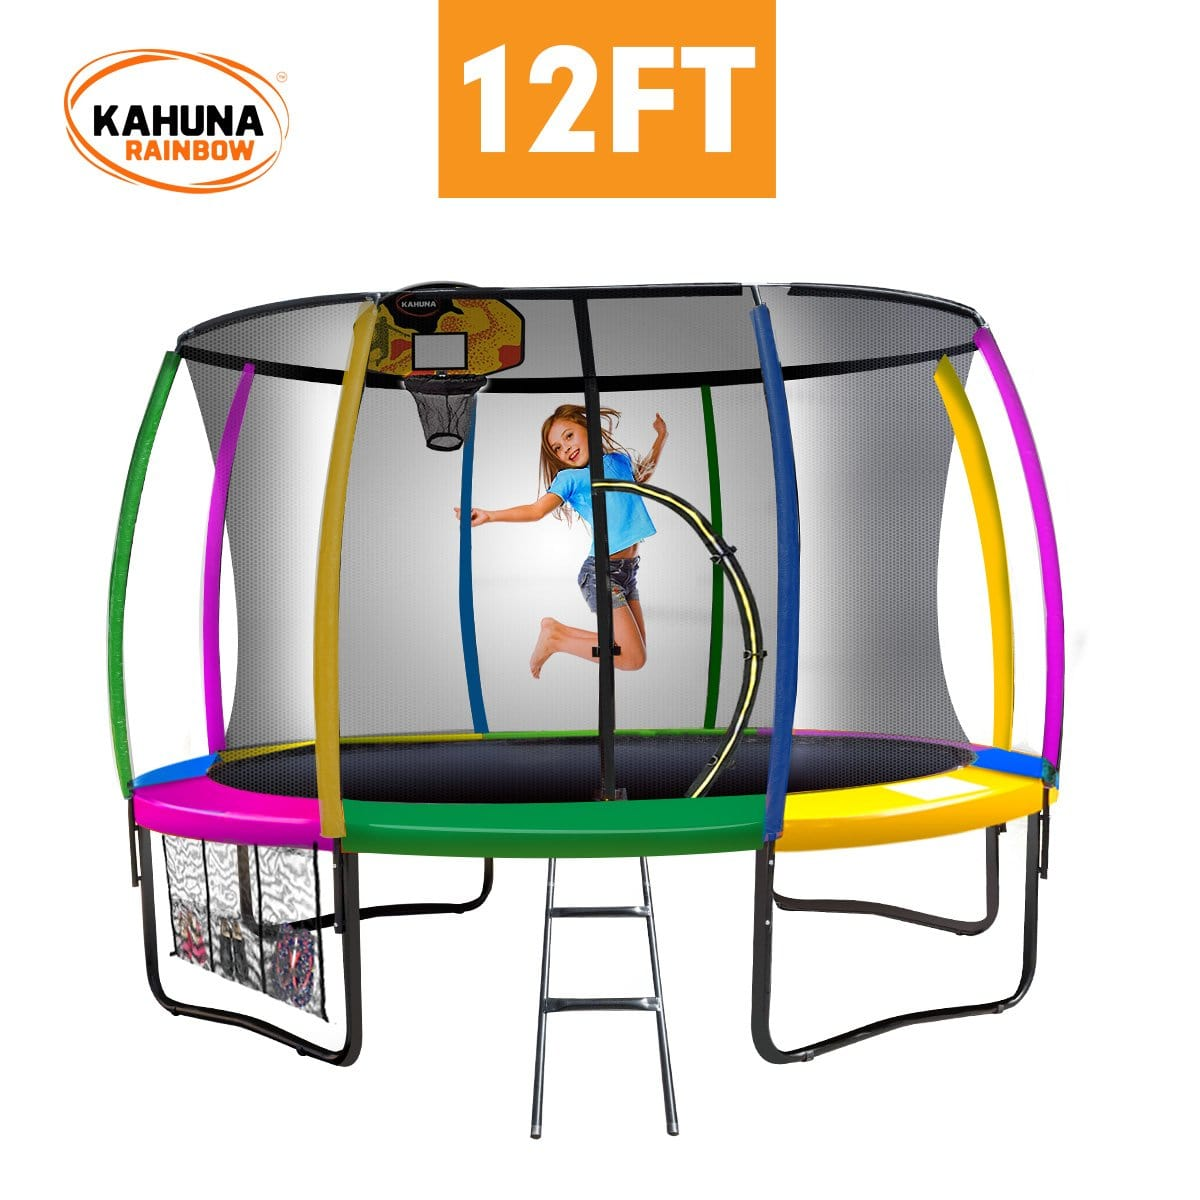 Kahuna Trampoline 12 ft with Basketball set - Rainbow